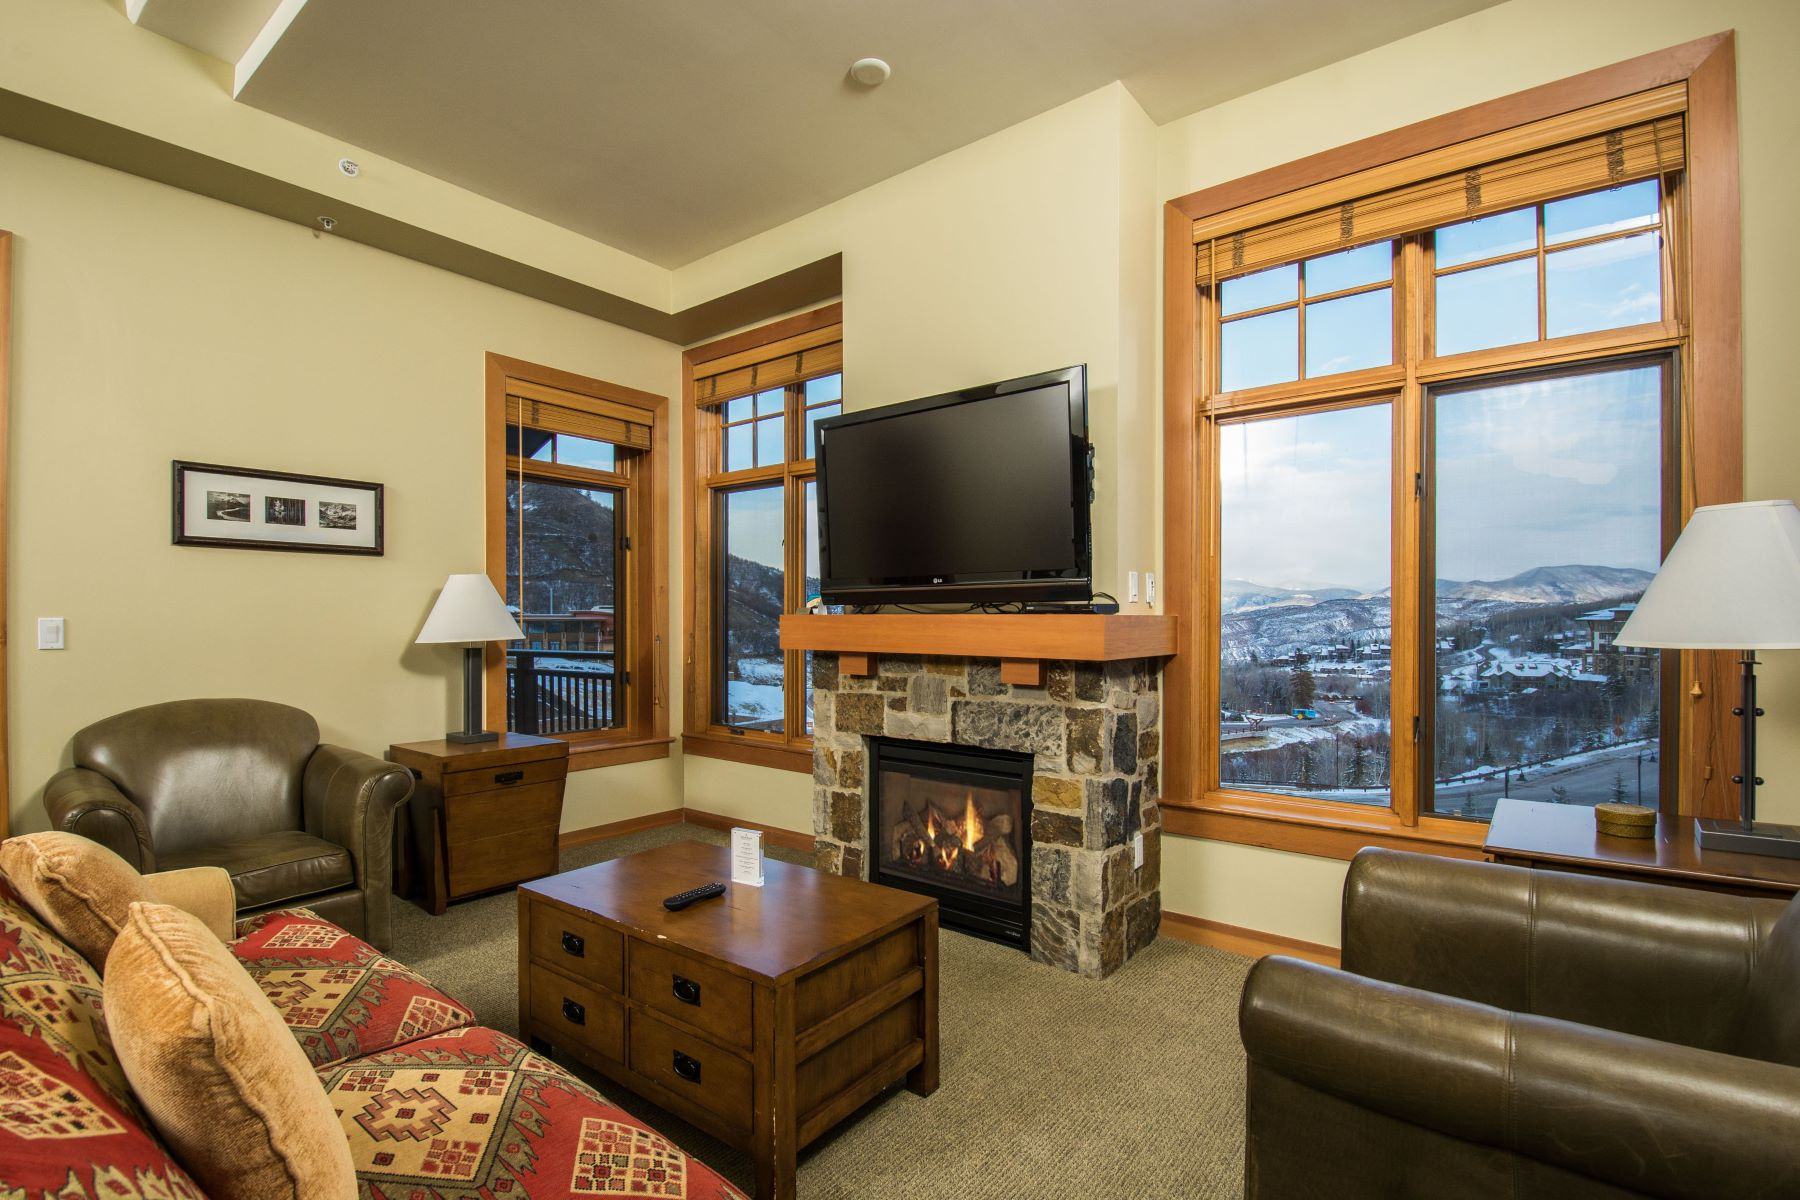 شقة بعمارة للـ Sale في Capitol Peak 60 Carriage Way, Snowmass Village, Colorado, 81615 United States